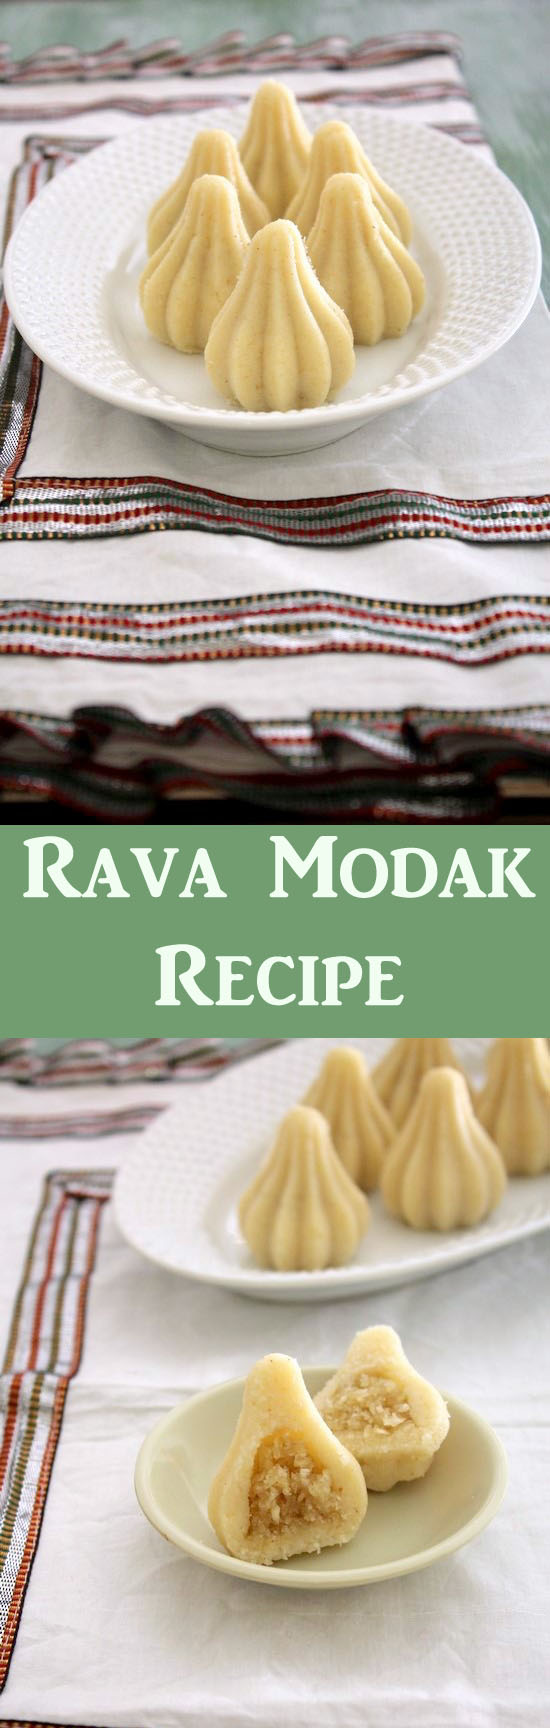 Rava modak recipe for Ganesh Chaturthi | Semolina modak